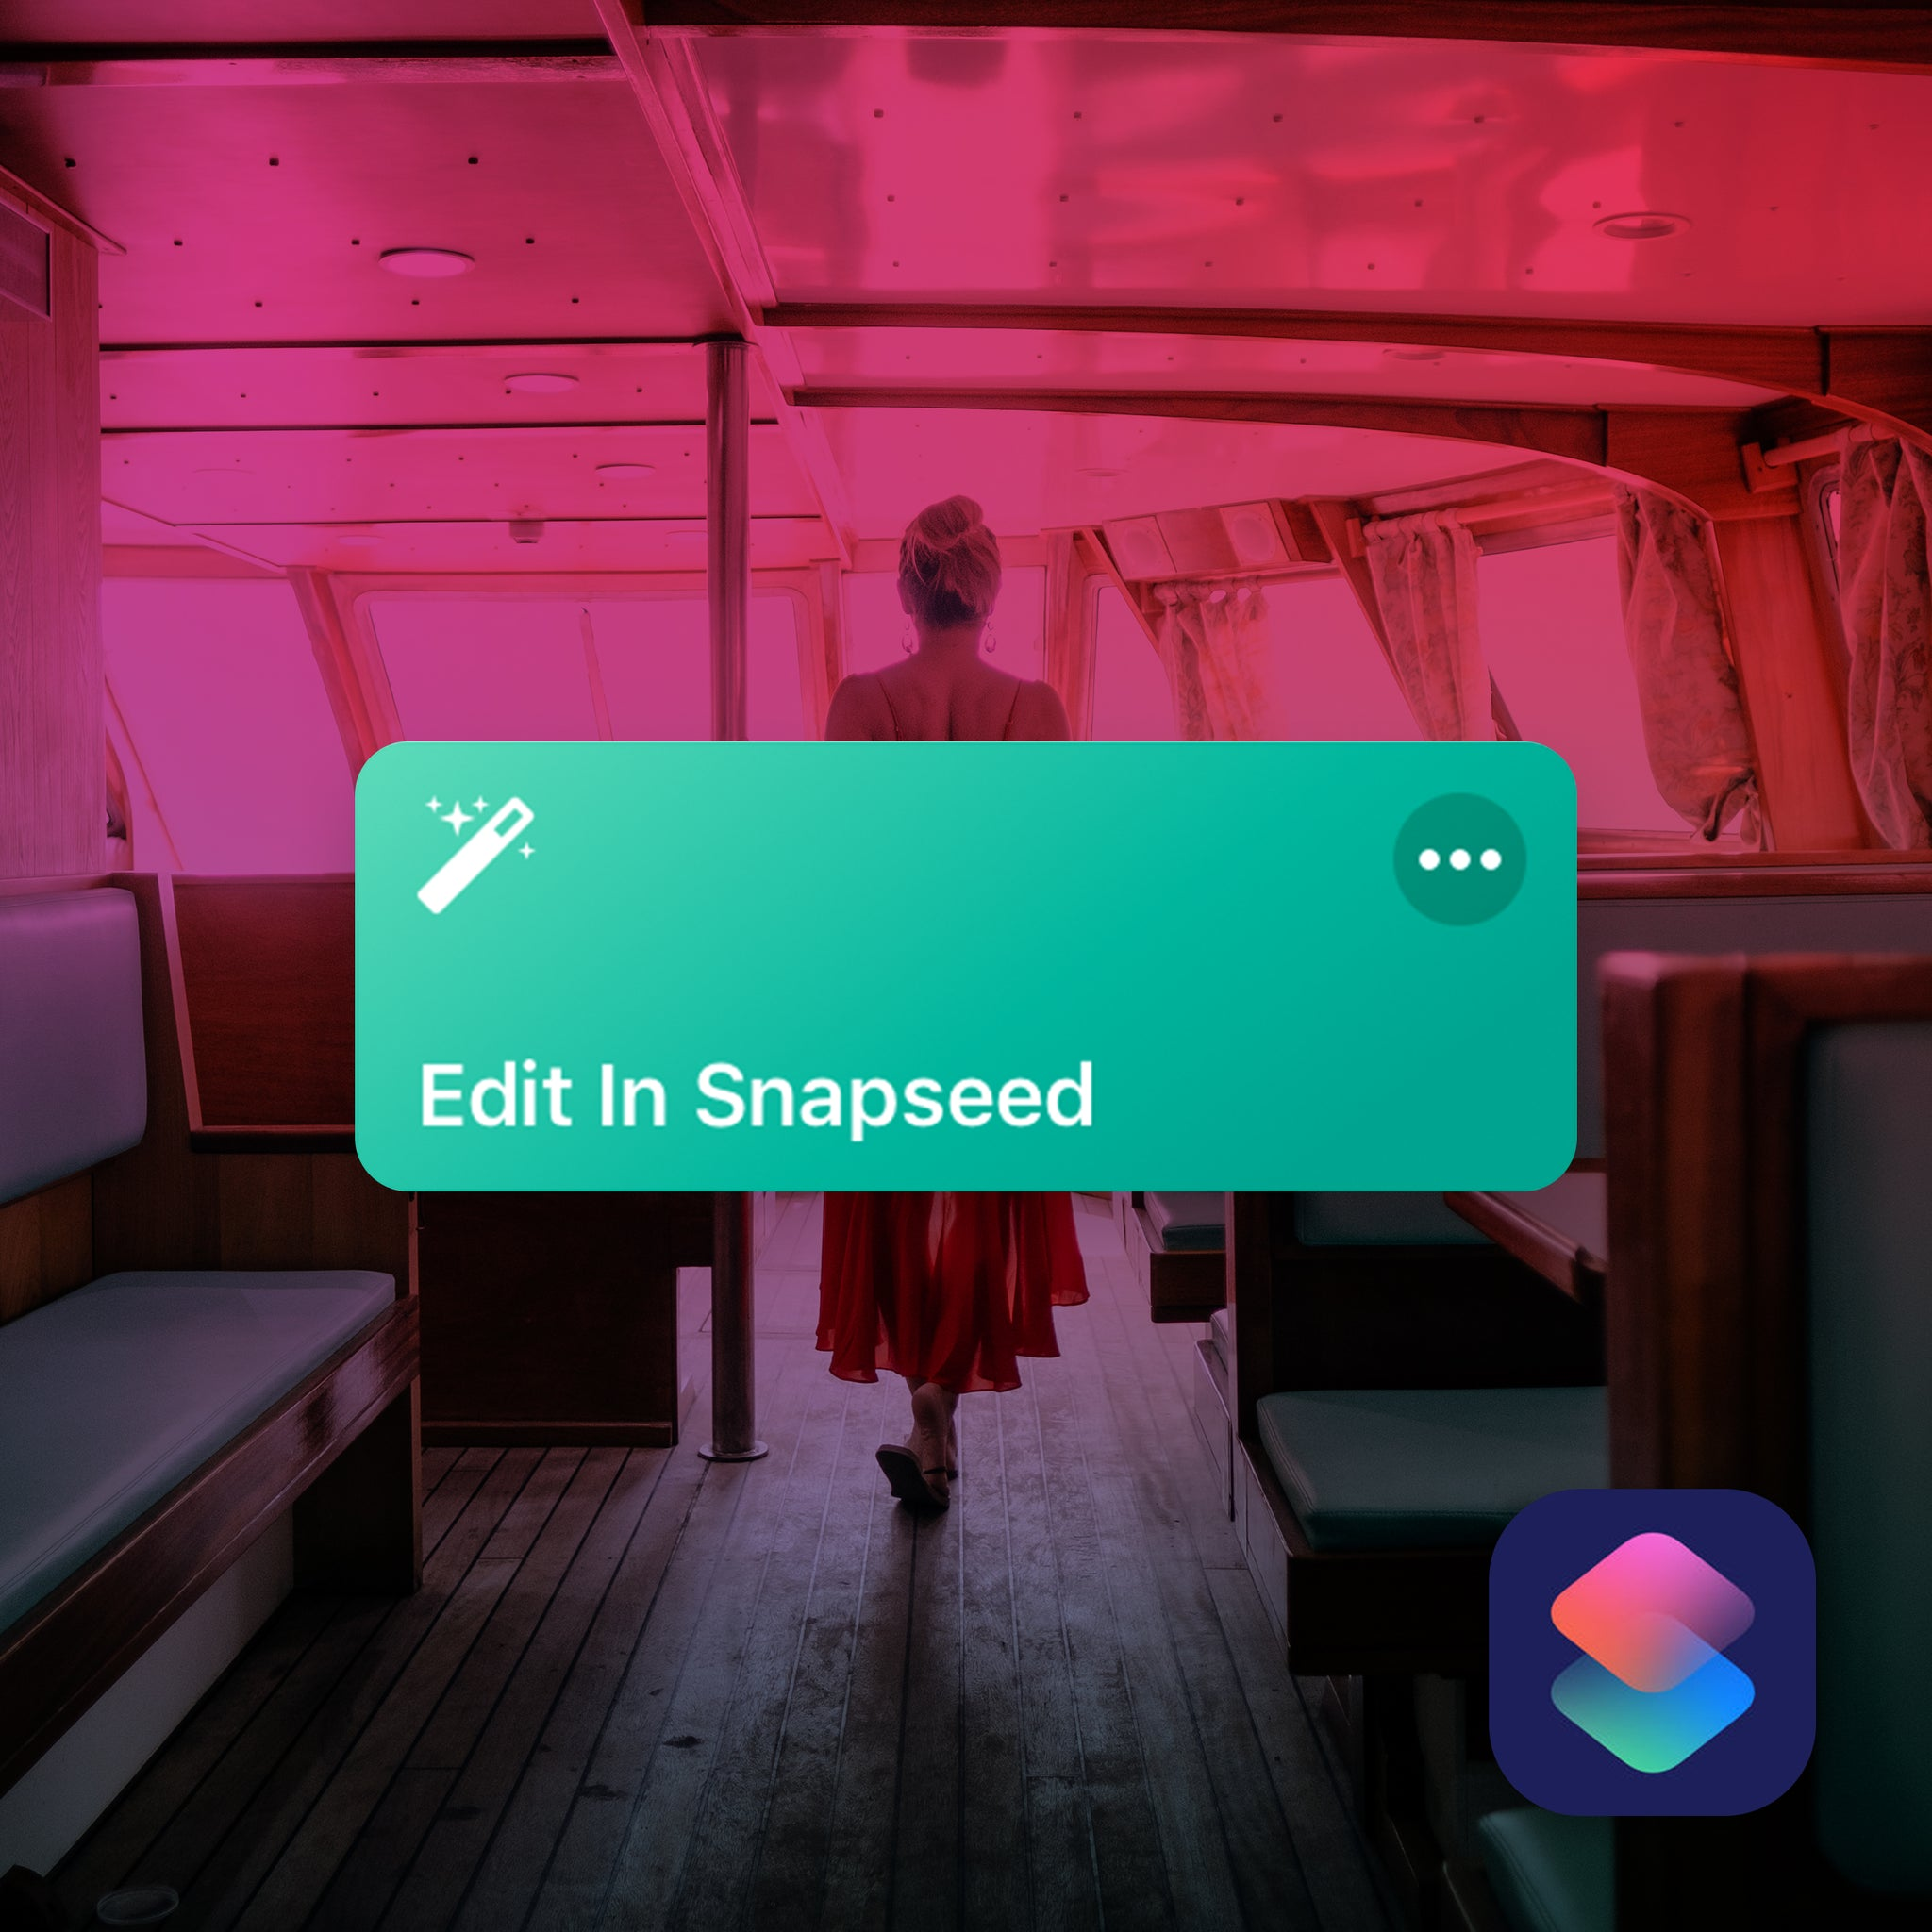 Download Free Photography iOS Shortcut: Edit in Snapseed – Verne Ho